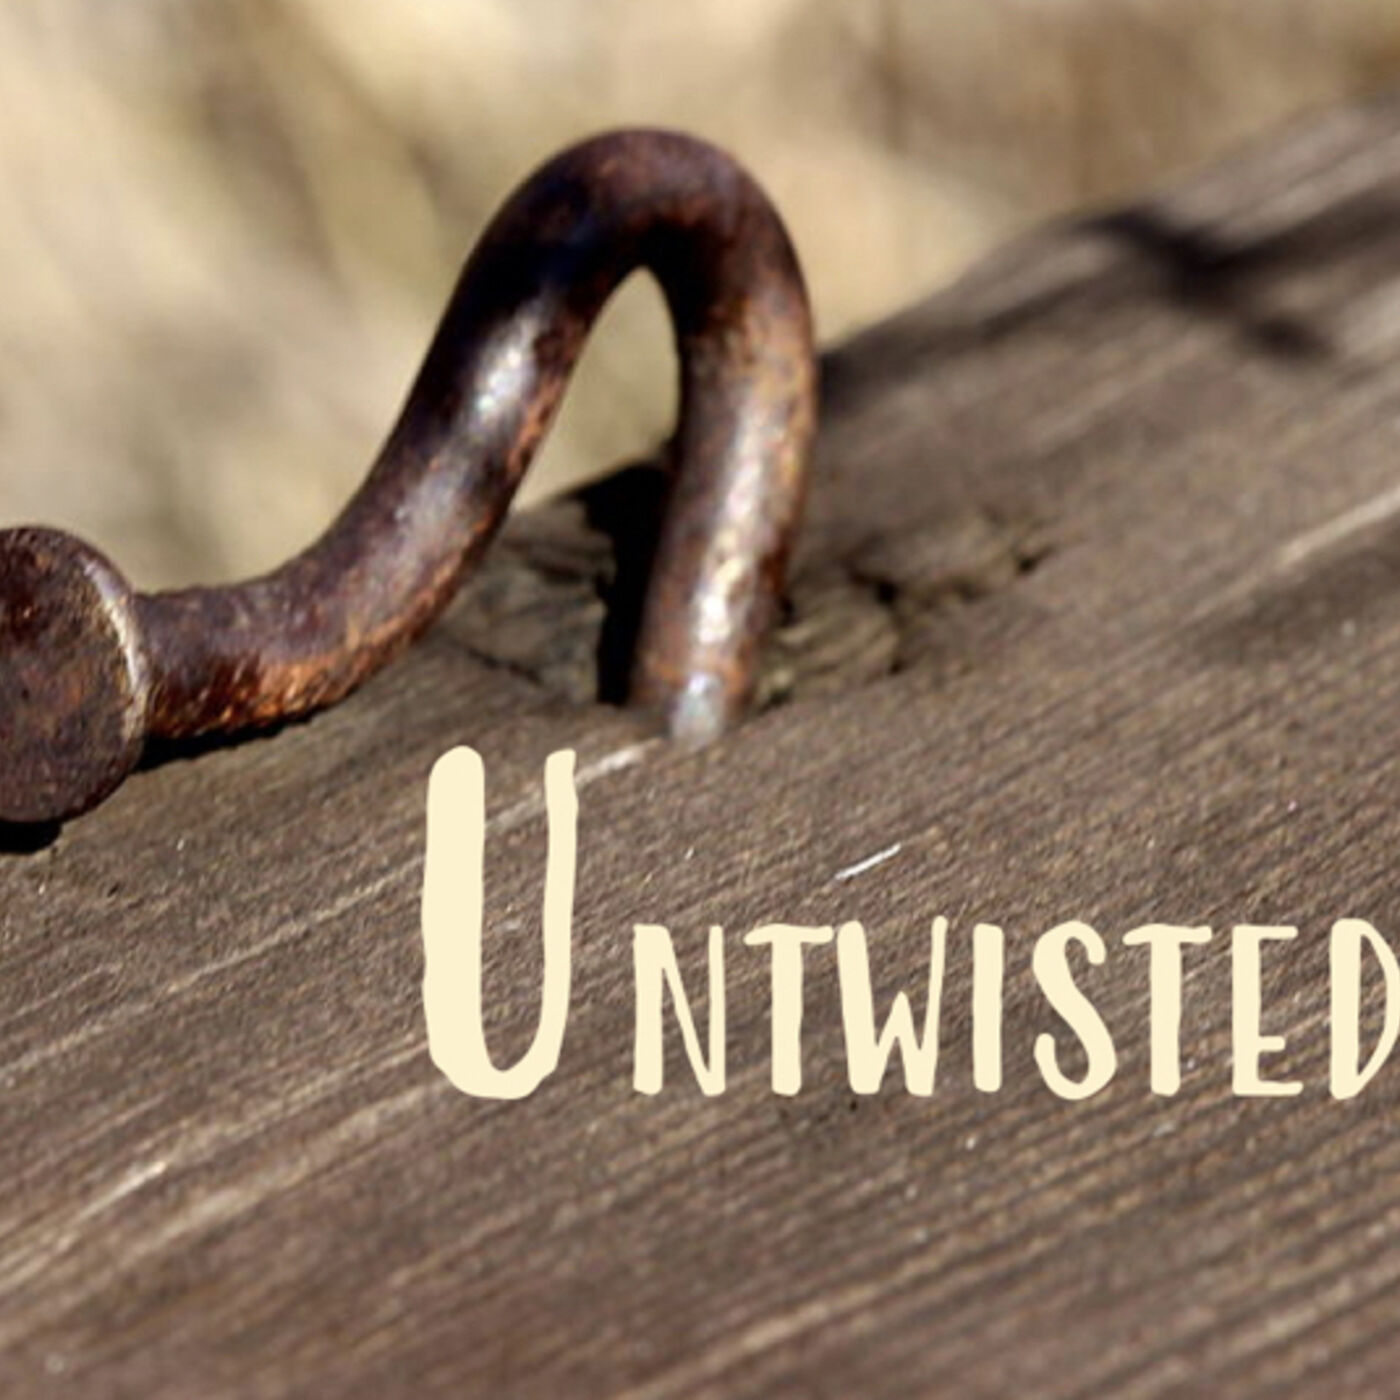 Untwisted: Too Easily Pleased?